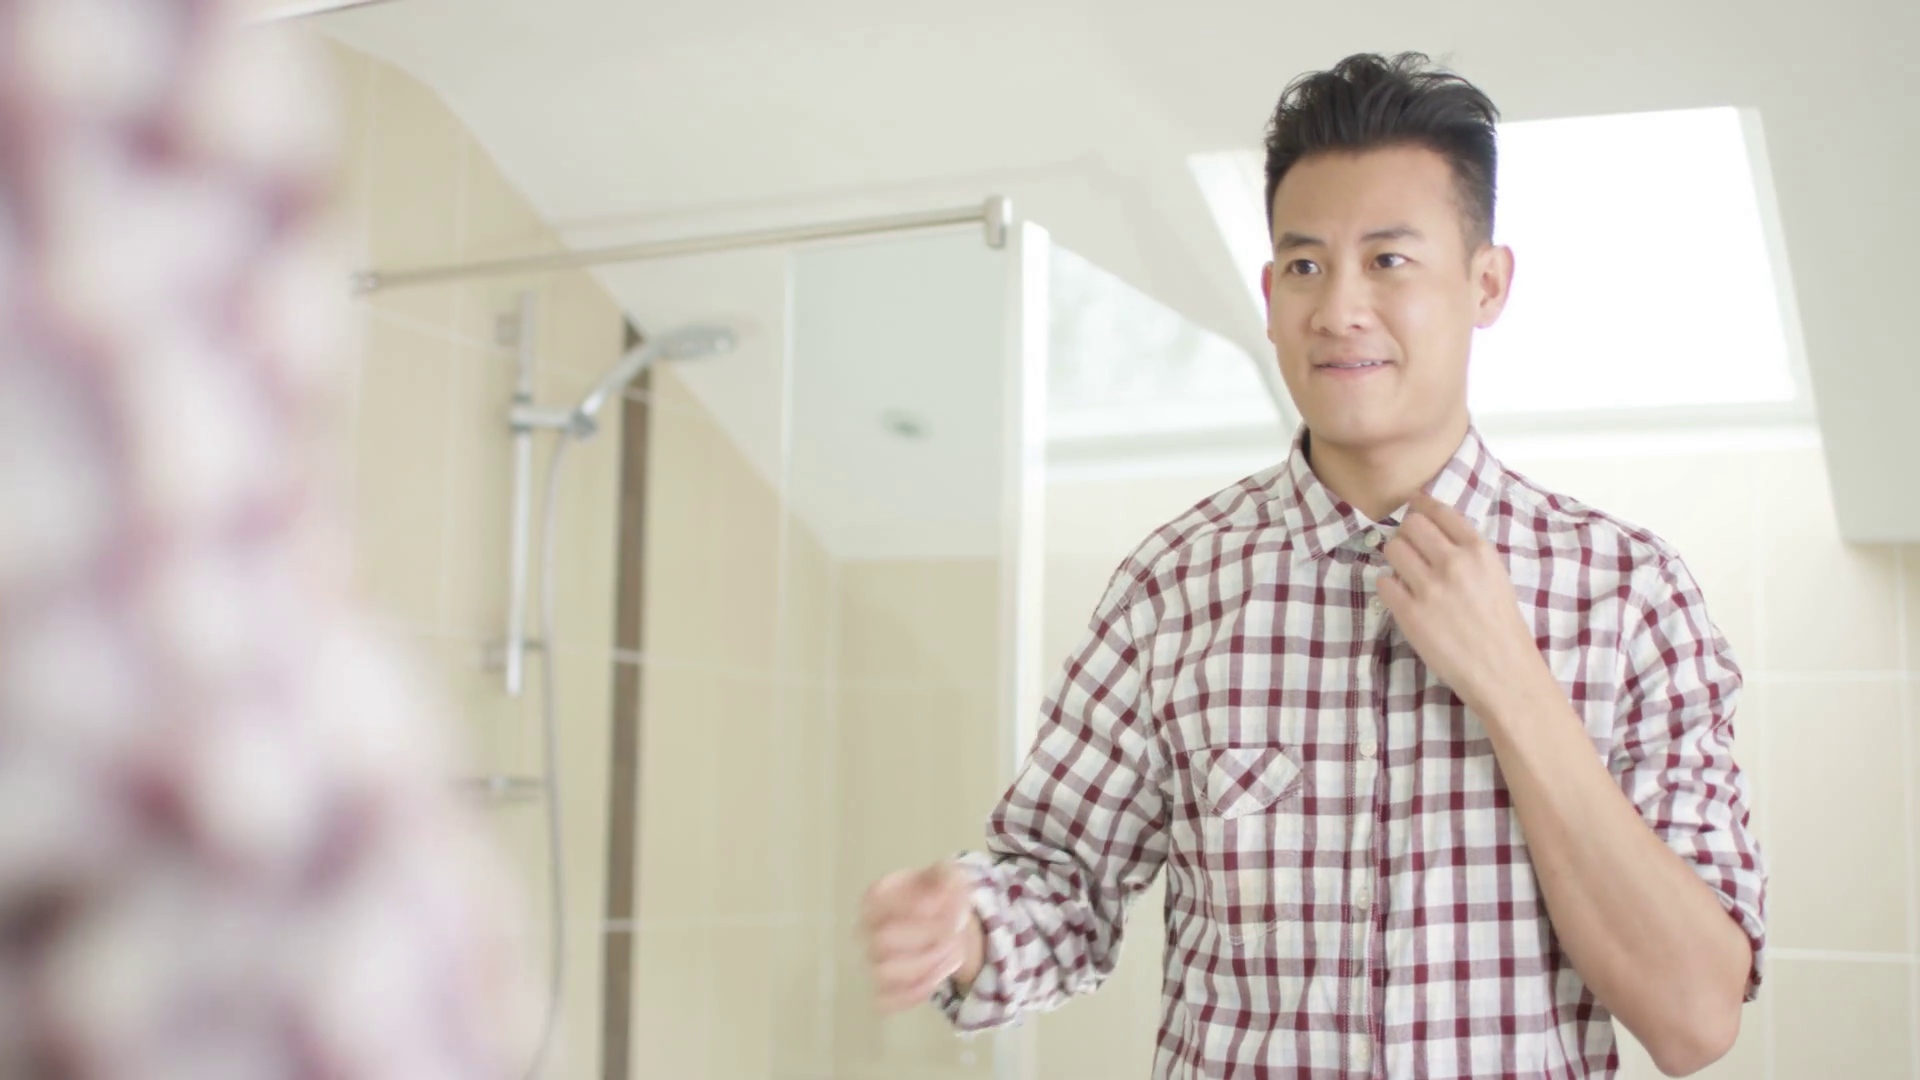 4K Cheerful young Asian man getting dressed u0026 looking in mirror Stock Video  Footage - VideoBlocks - Getting Dressed PNG HD